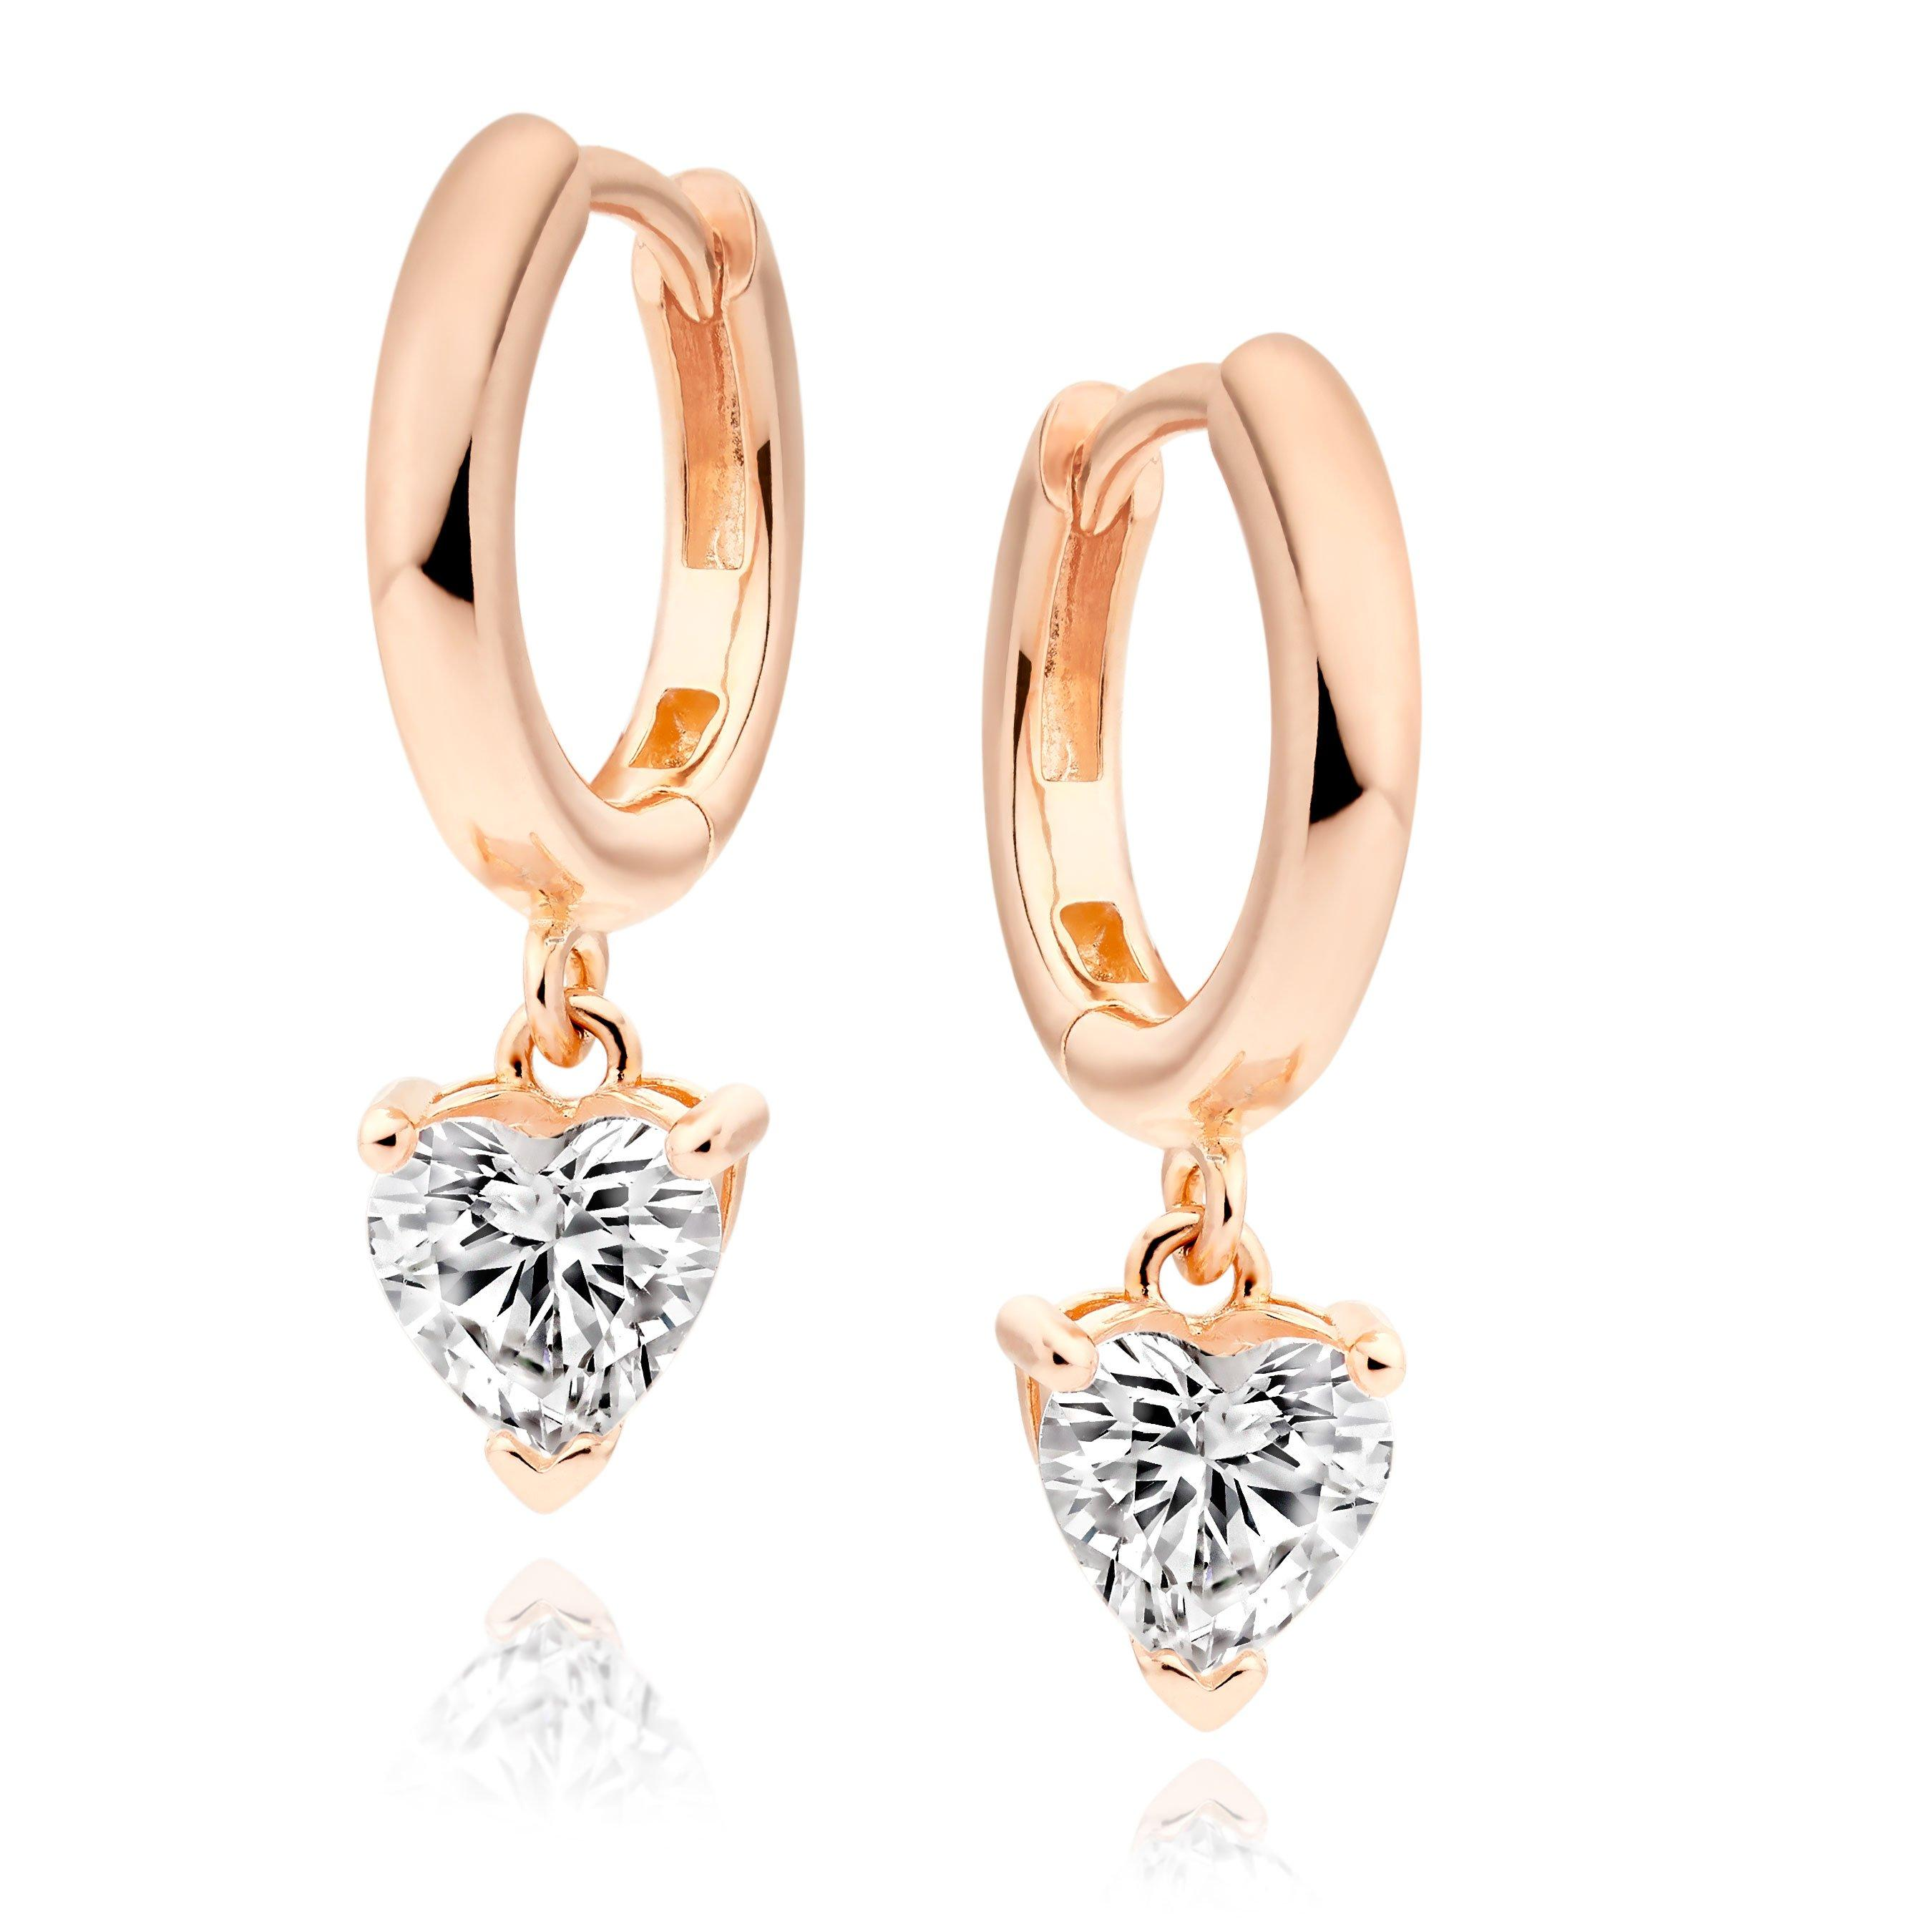 Silver Rose Gold Plated Cubic Zirconia Heart Charm Hoop Earrings